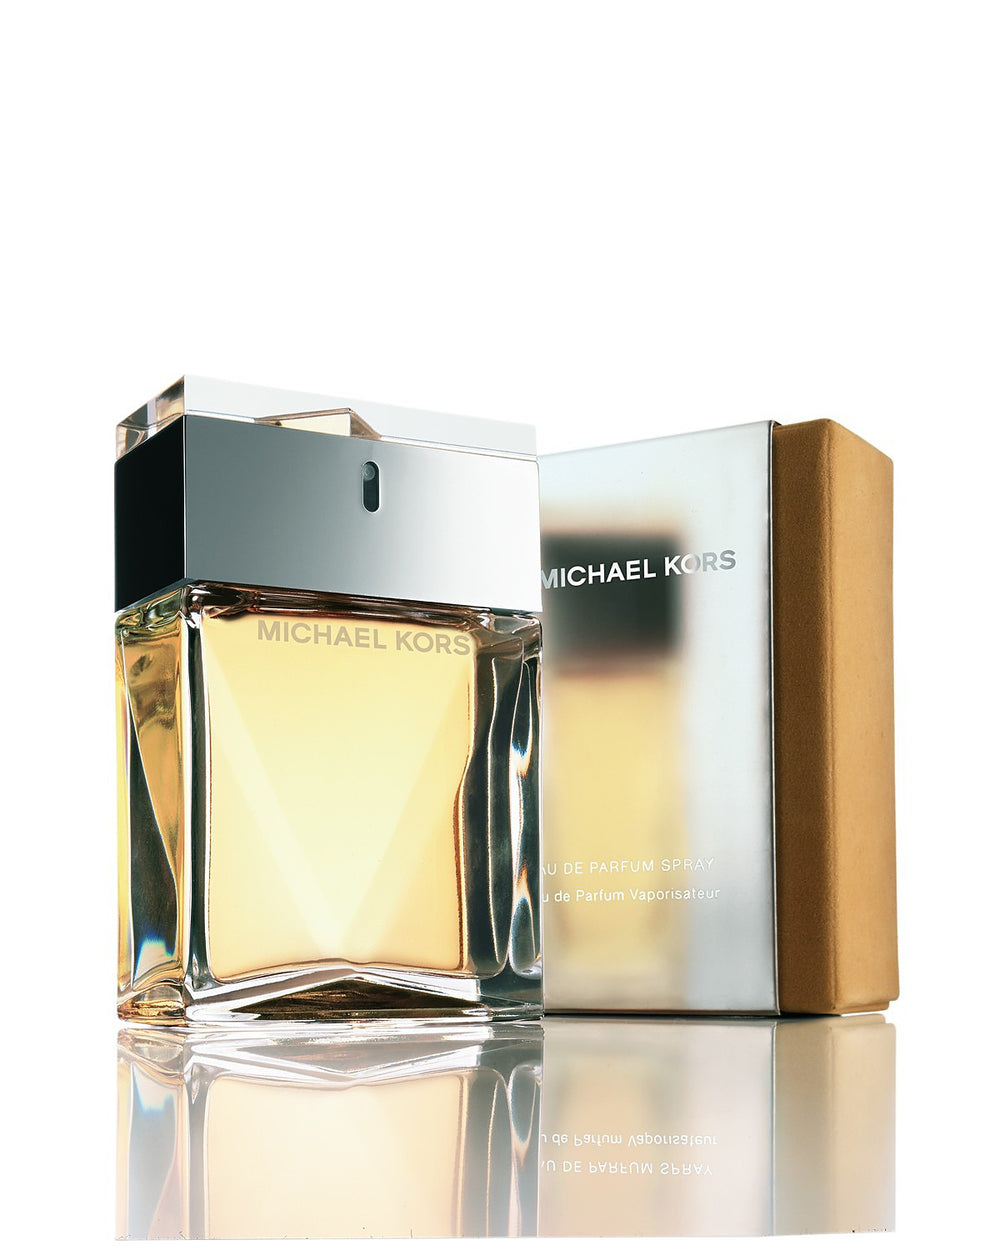 image of michael kors fragrance